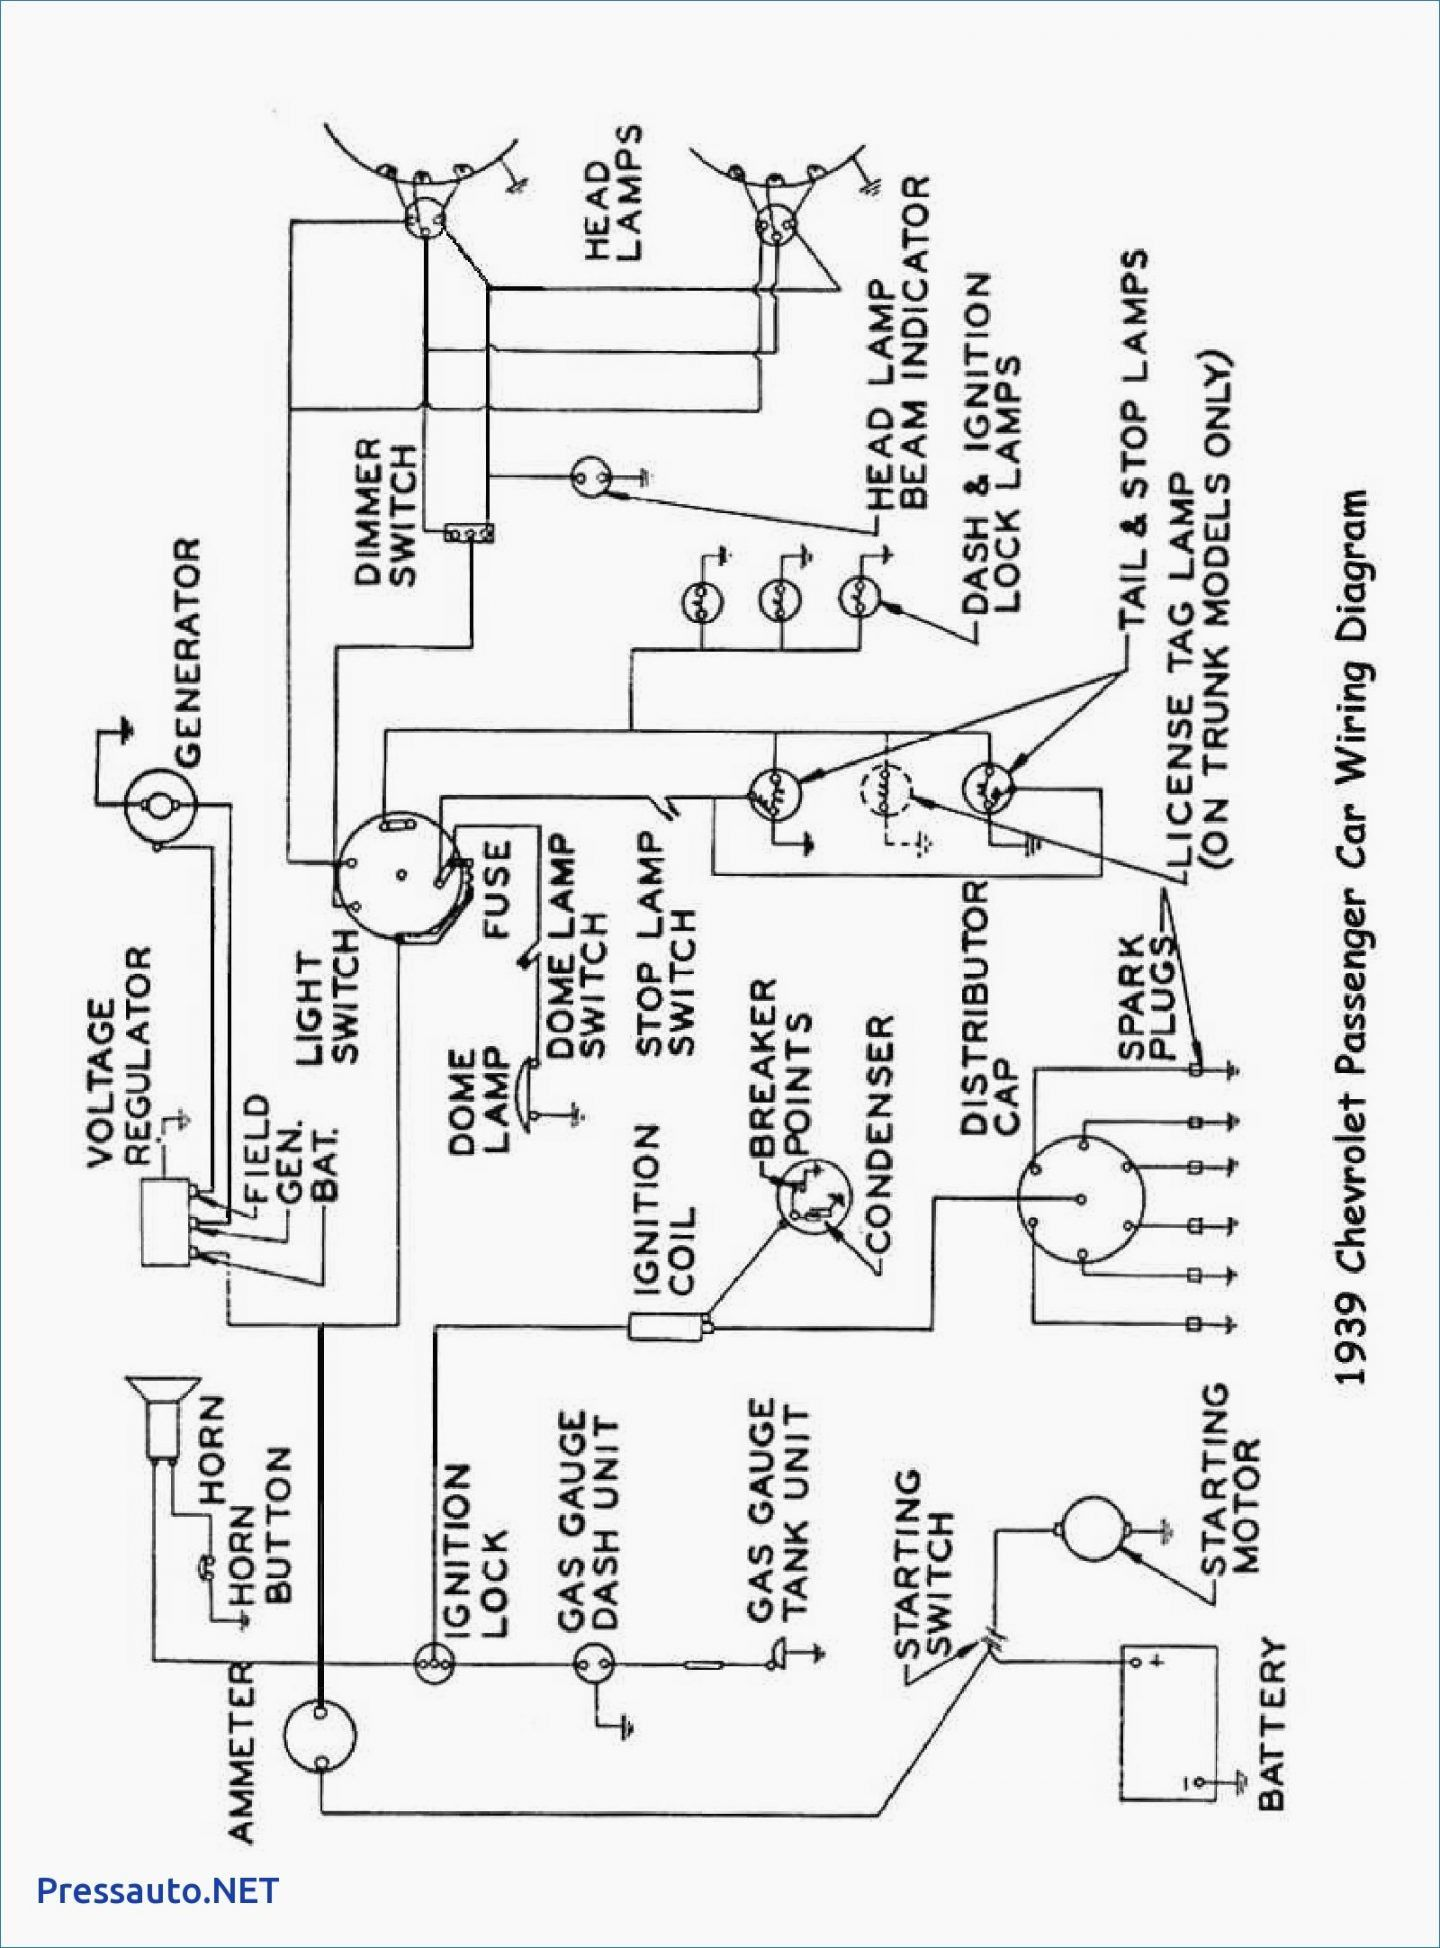 Diagram Welding Machine - Wiring Schematics on